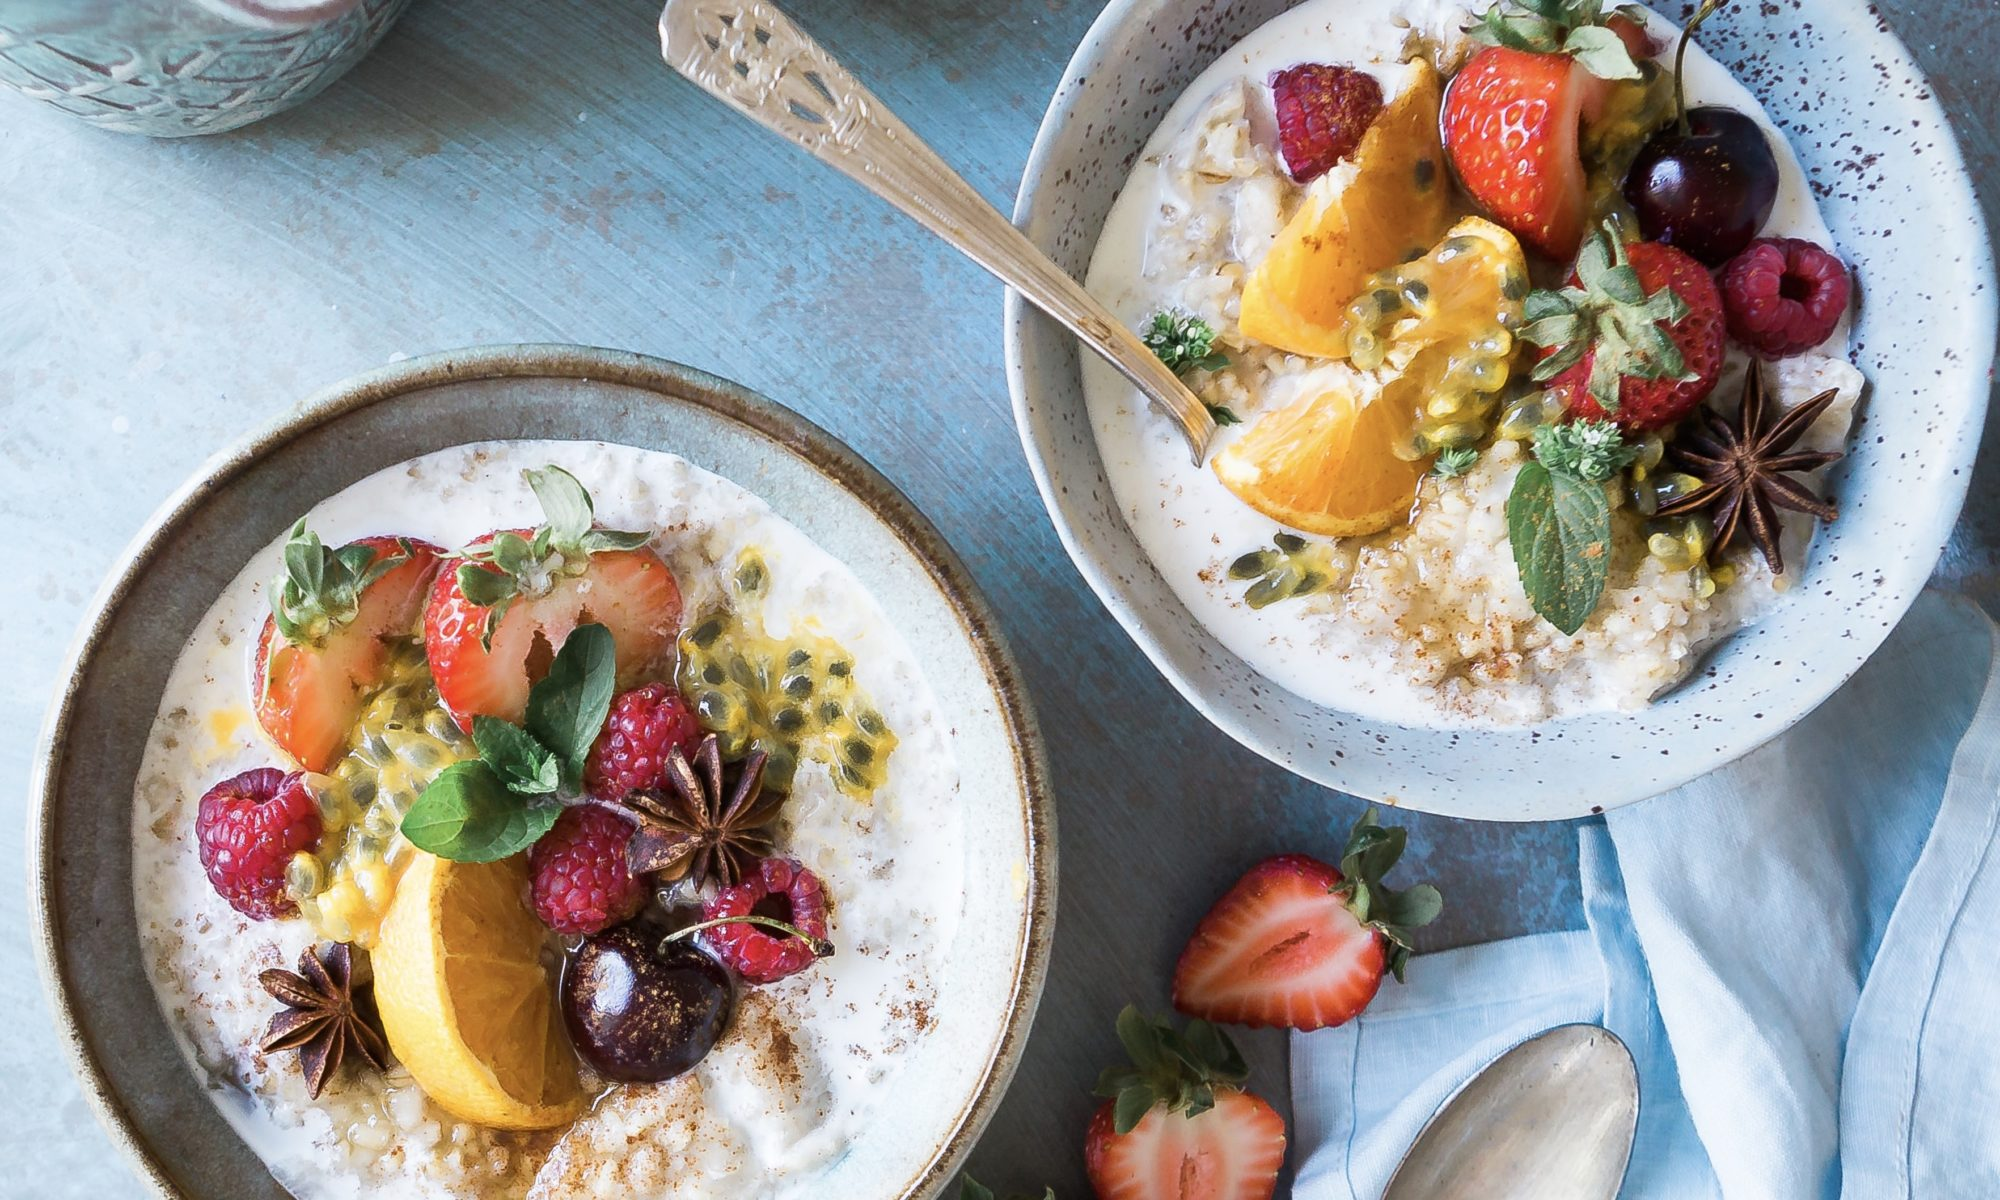 Bowls of yogurt topped with fruit demonstrate a healthy diet.